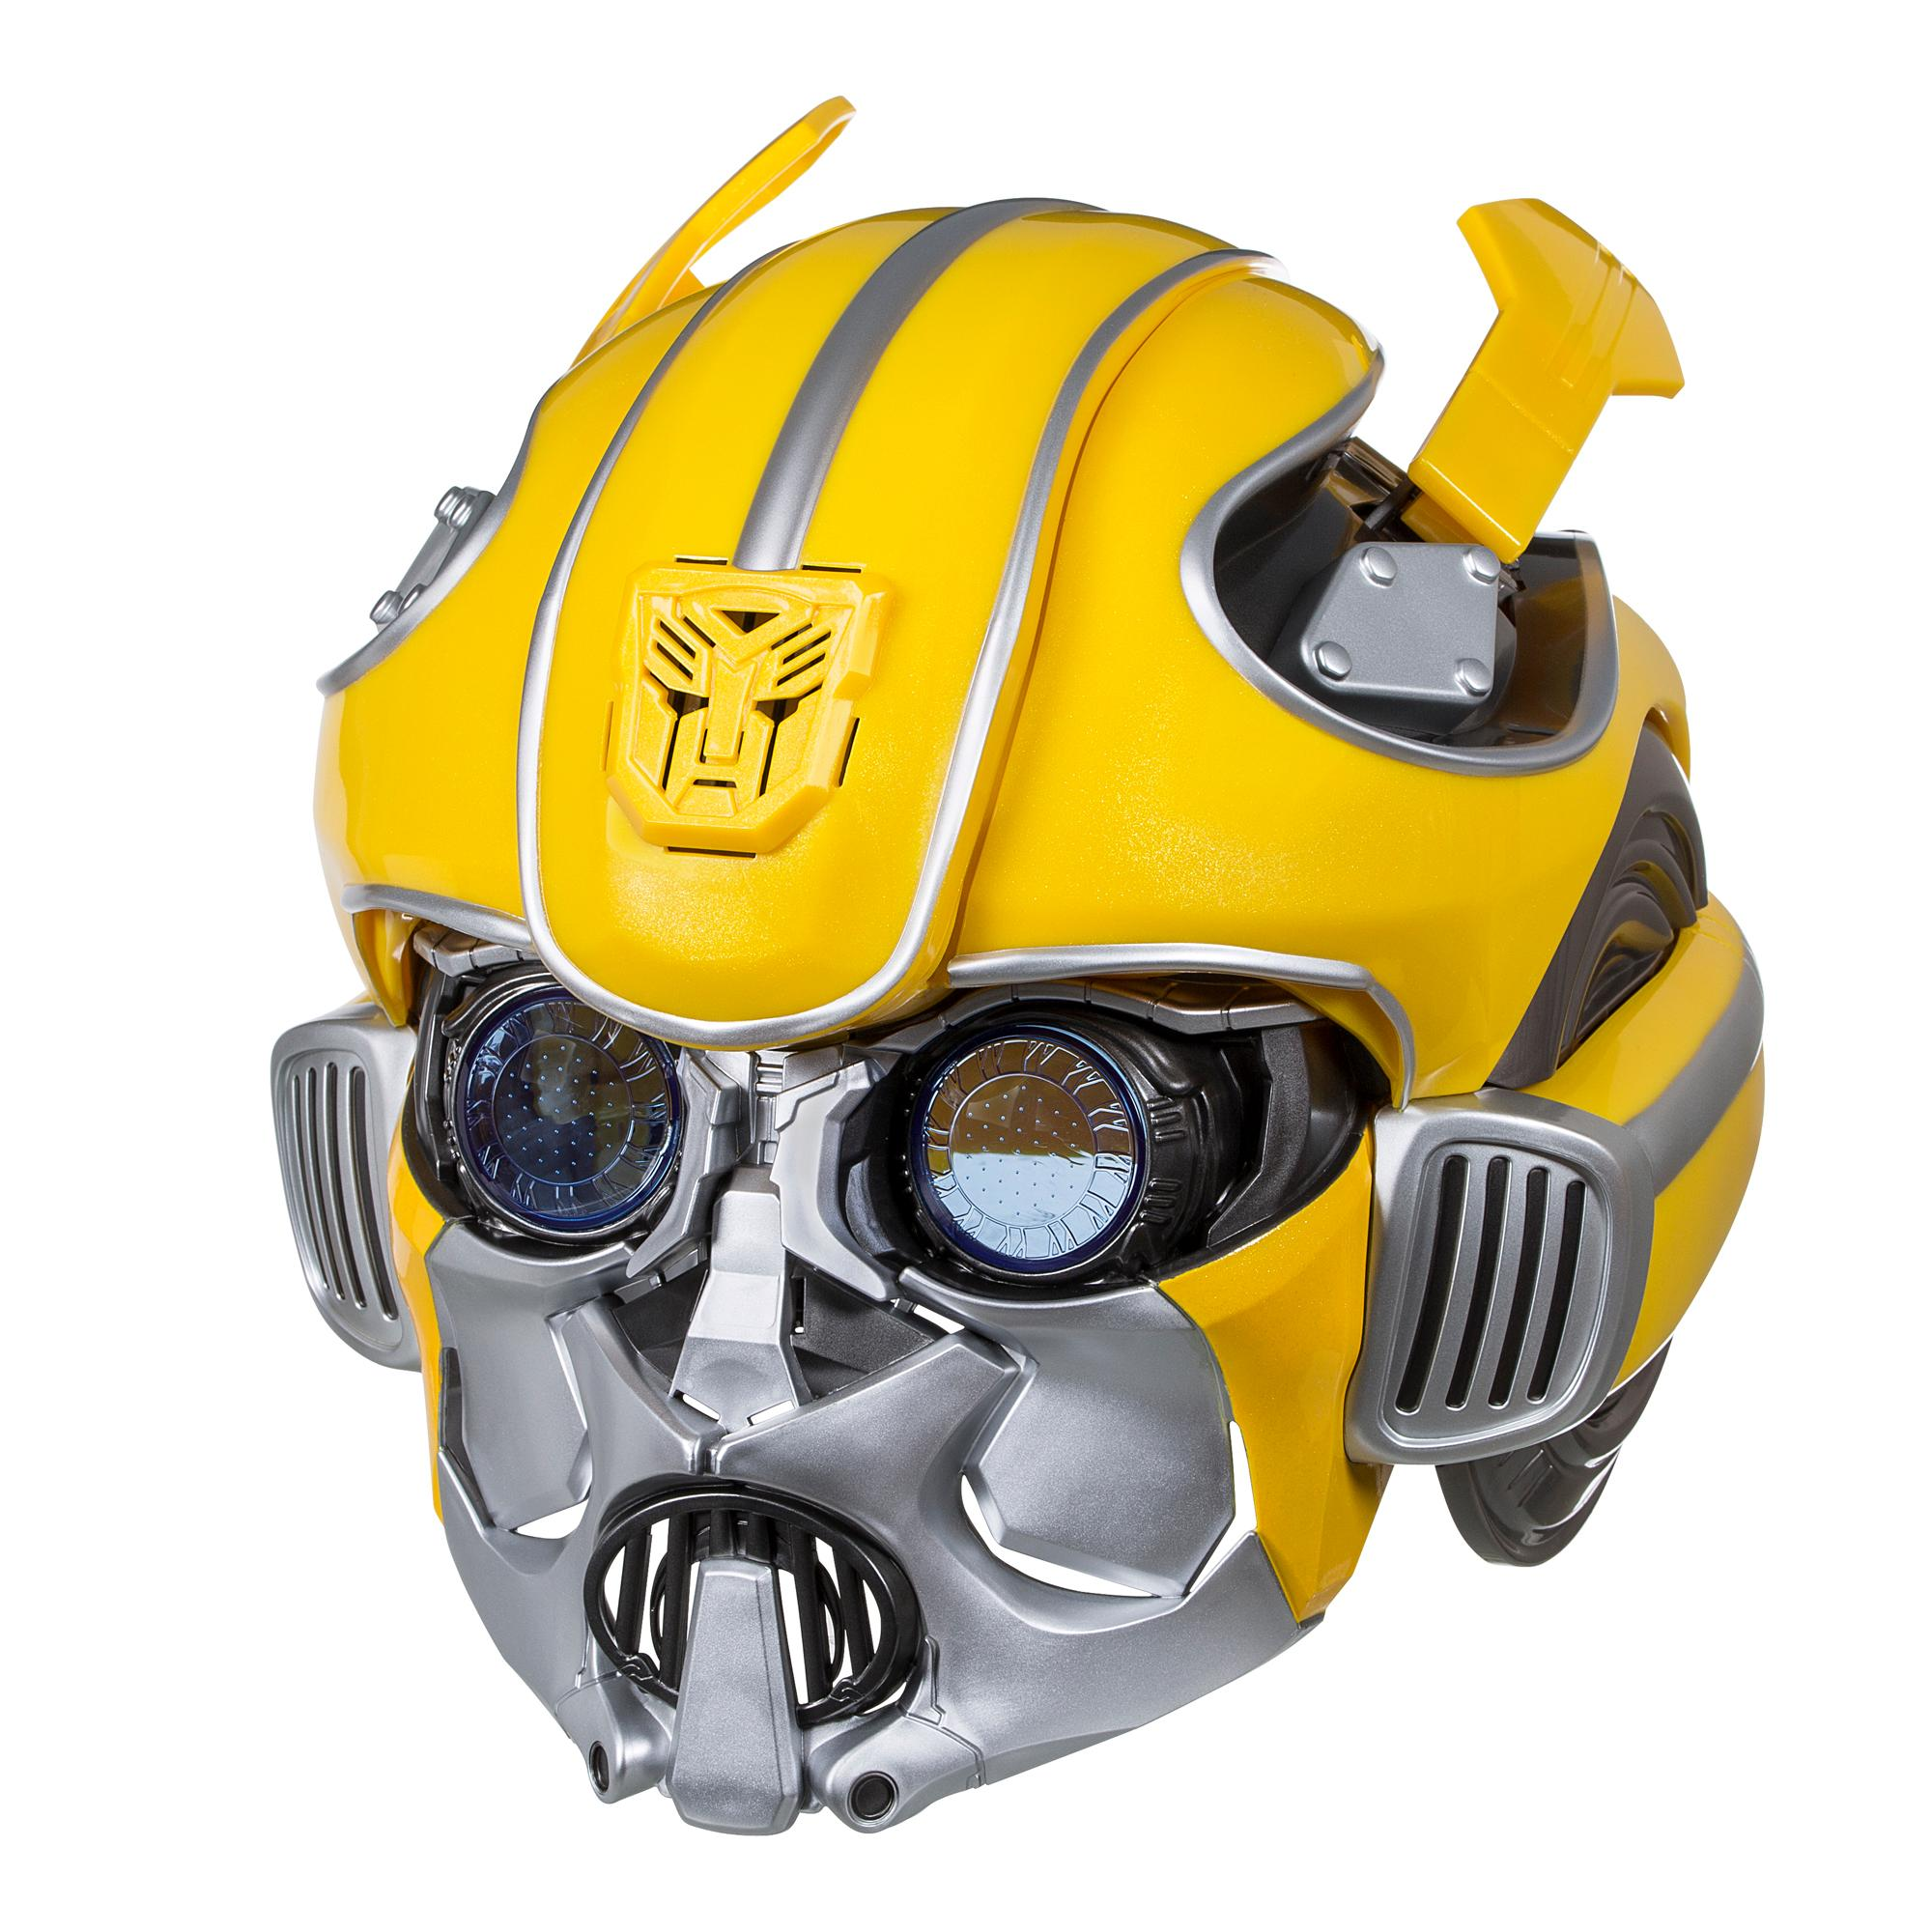 Transformers Studio Series - Capacete do Bumblebee